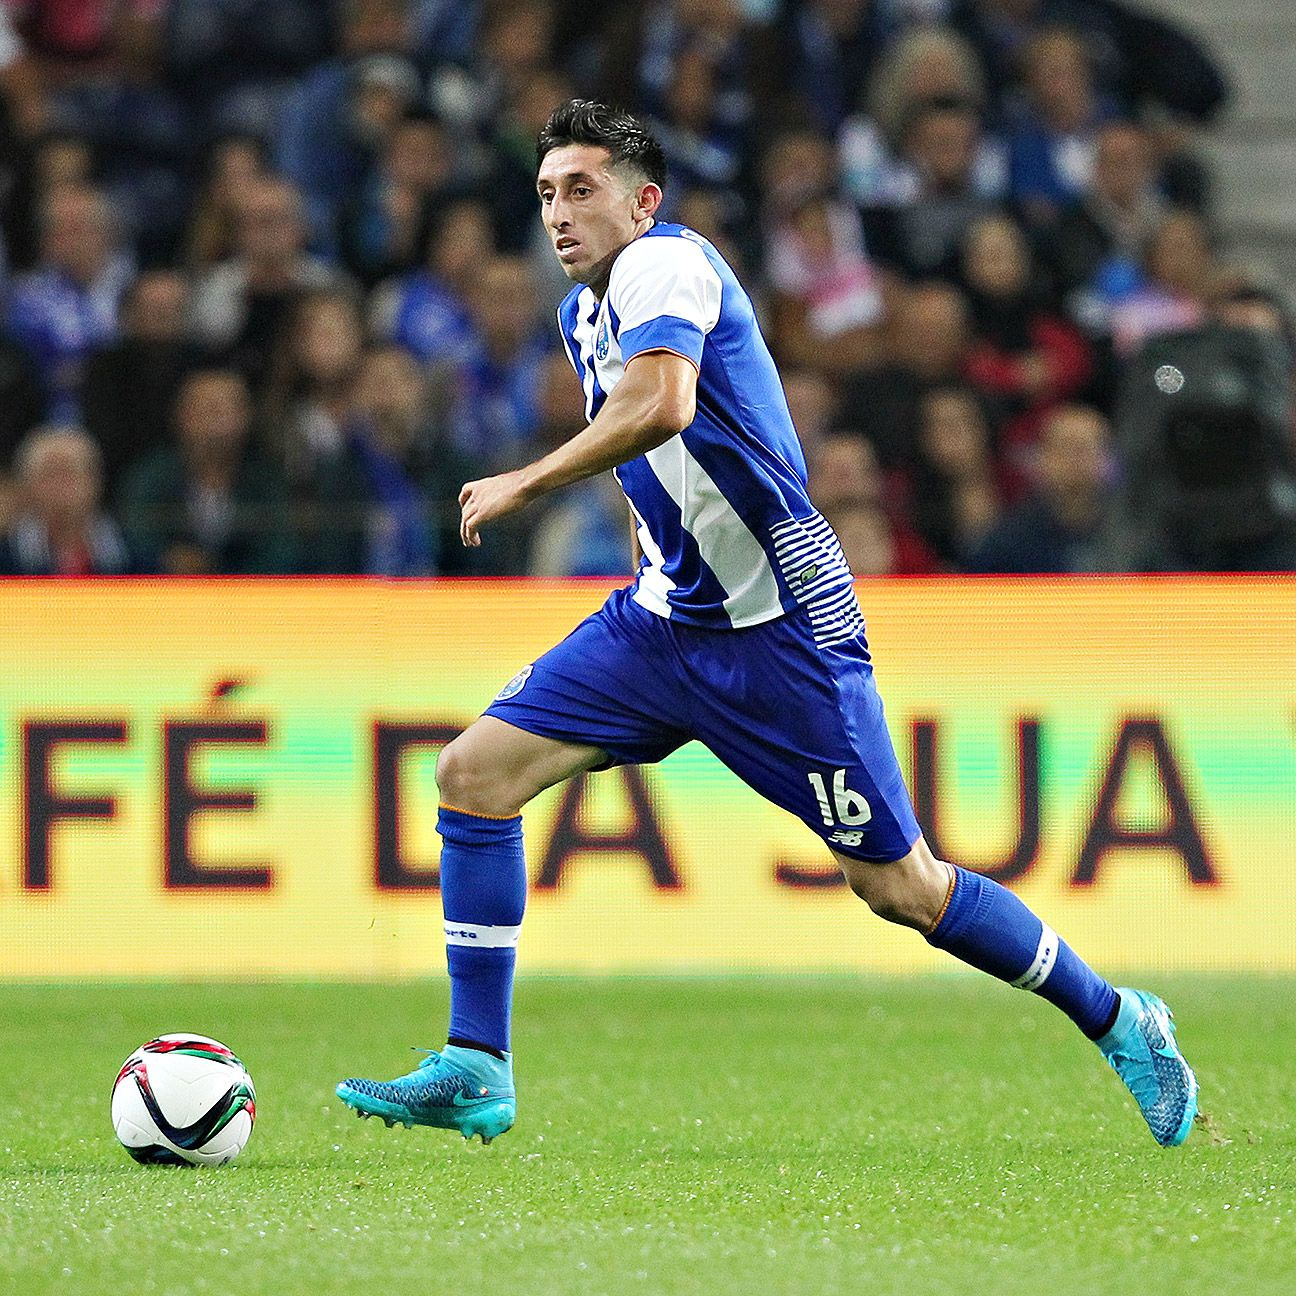 It's a good sign for Mexico that Hector Herrera is off to a quick start with Porto in 2016.